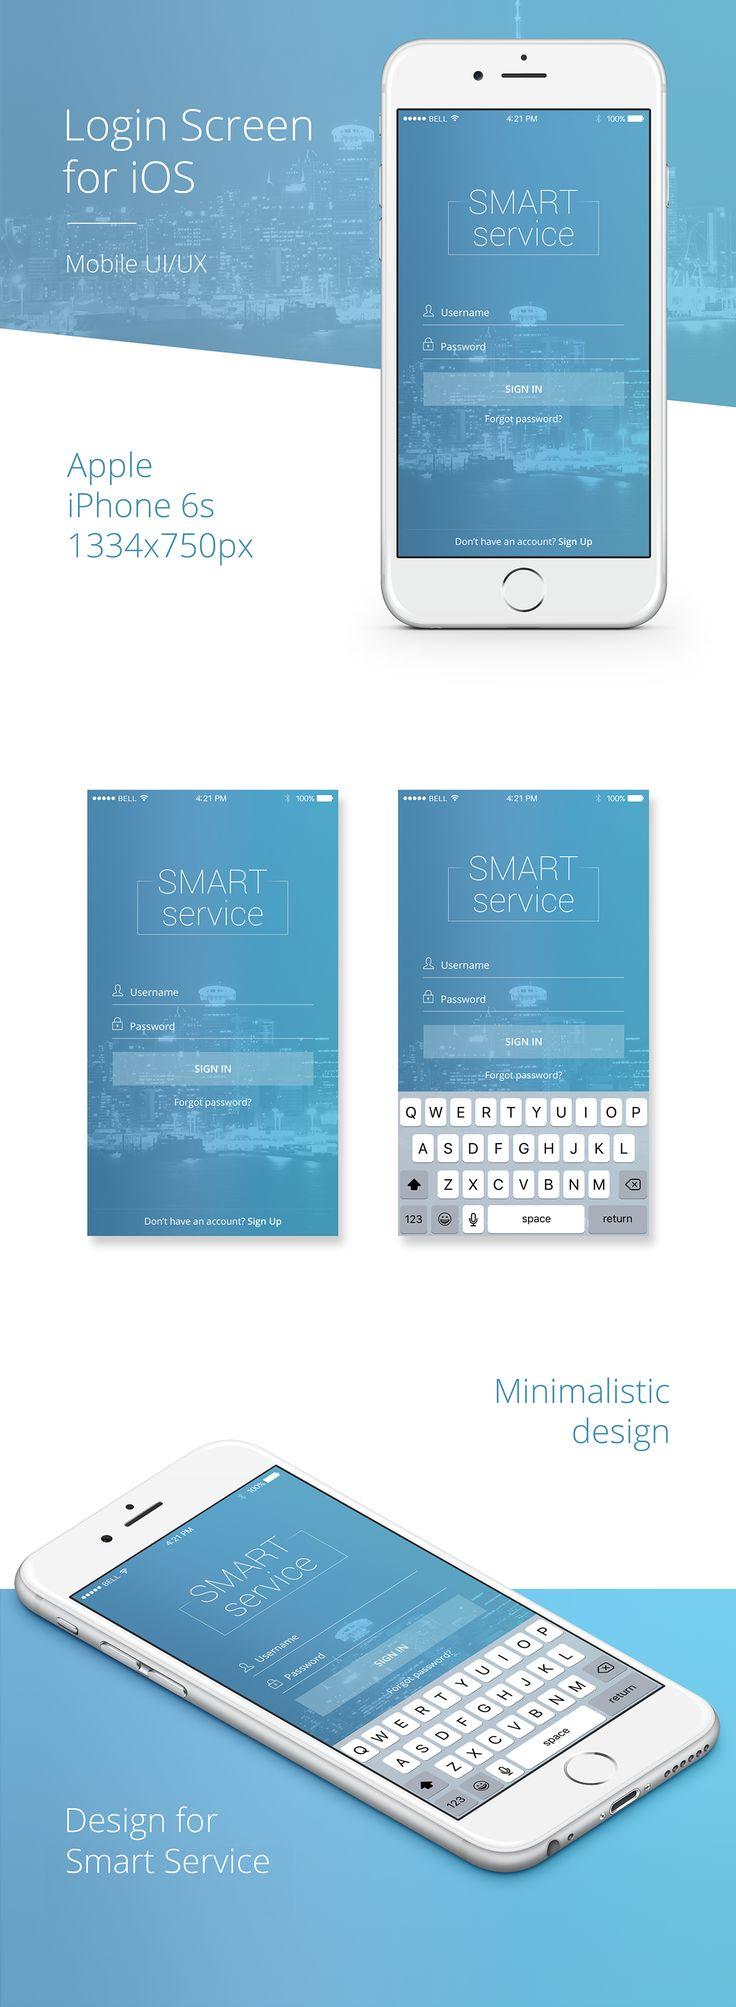 """Free PSD """"Login Screen"""" for iOS on Behance"""